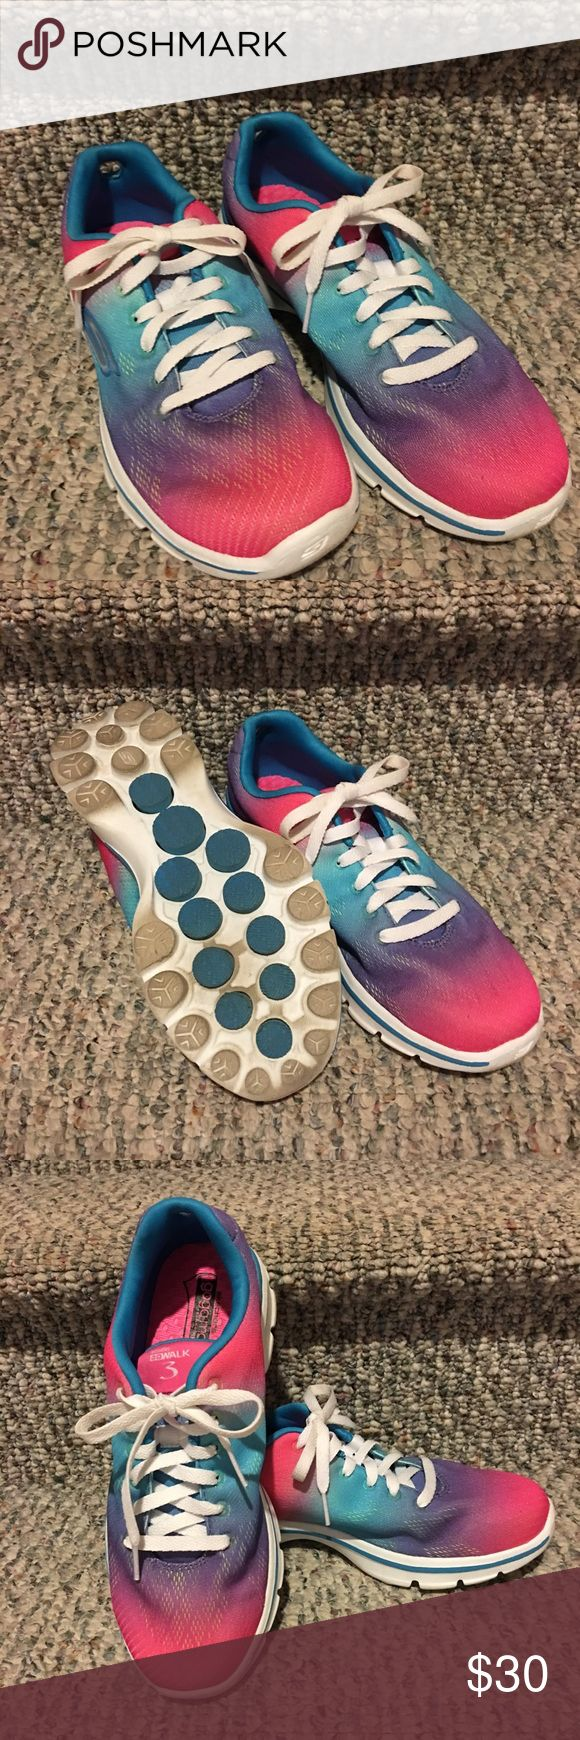 Sketchers Go Walk 3 Neon Pastel Size 7 Sneaker Sketchers gogomat technology insert I this cute pastel size 7 Go Walk sneaker has only been worn twice.  Start your New Year exercise plan out on a pretty pastel foot. Skechers Shoes Sneakers